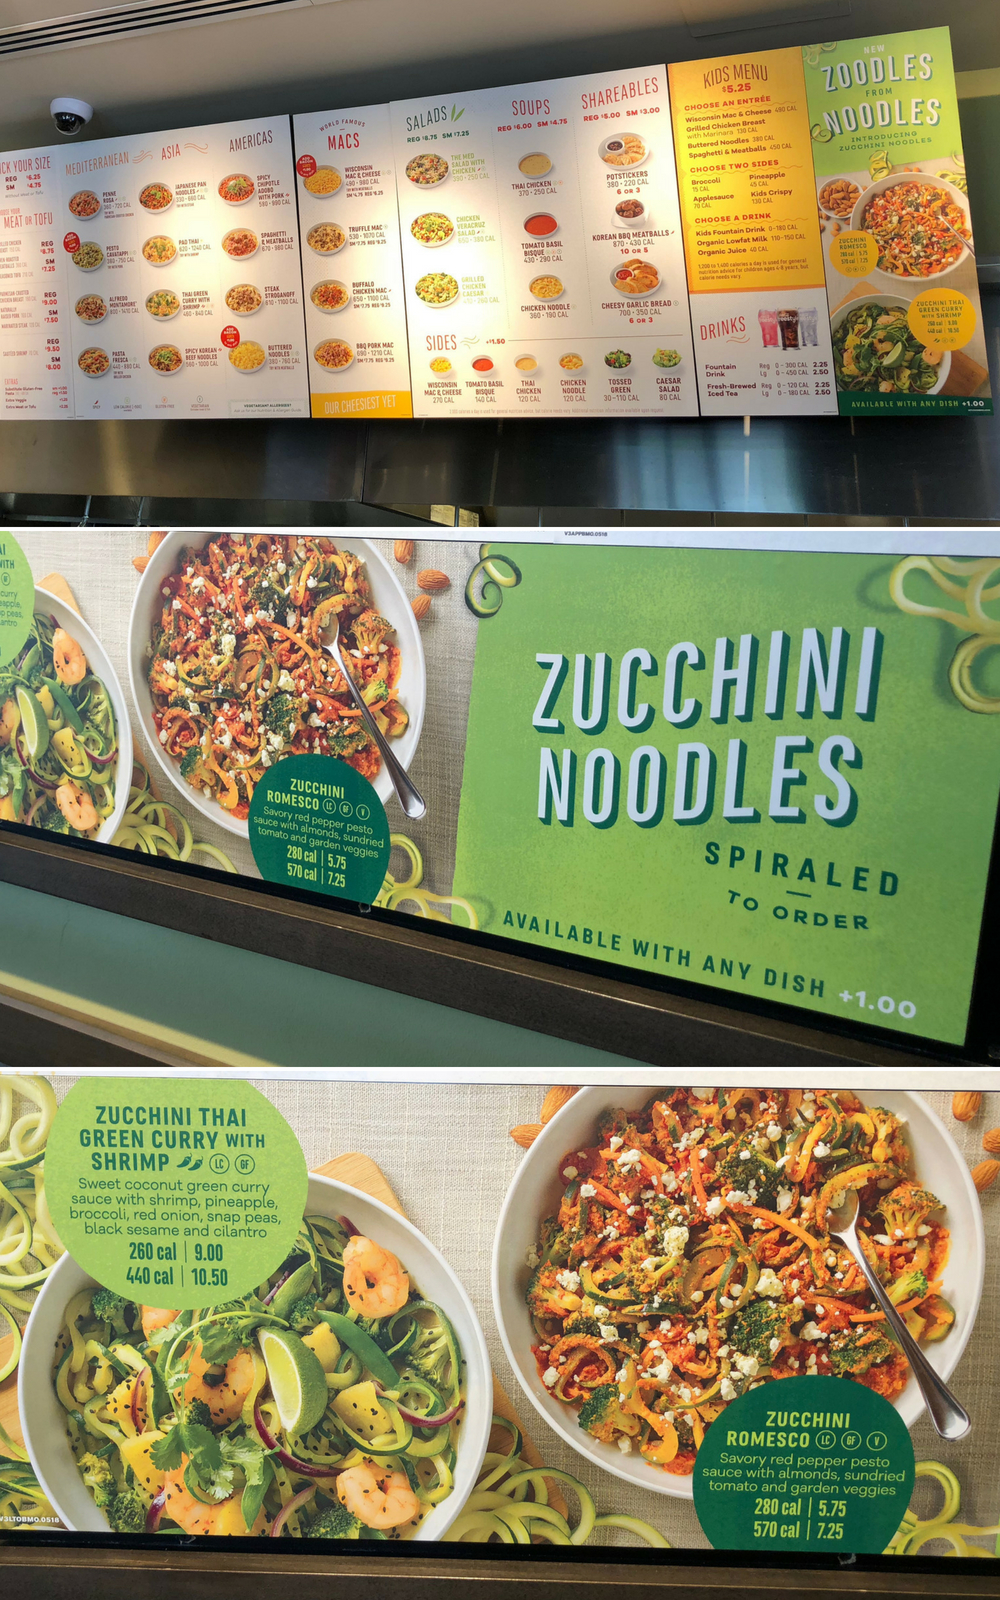 Zoodles at Noodles & Company - Introducing zucchini noodles at Noodles & Company #NoodlesMO #ZoodlesatNoodles | Ellie And Addie